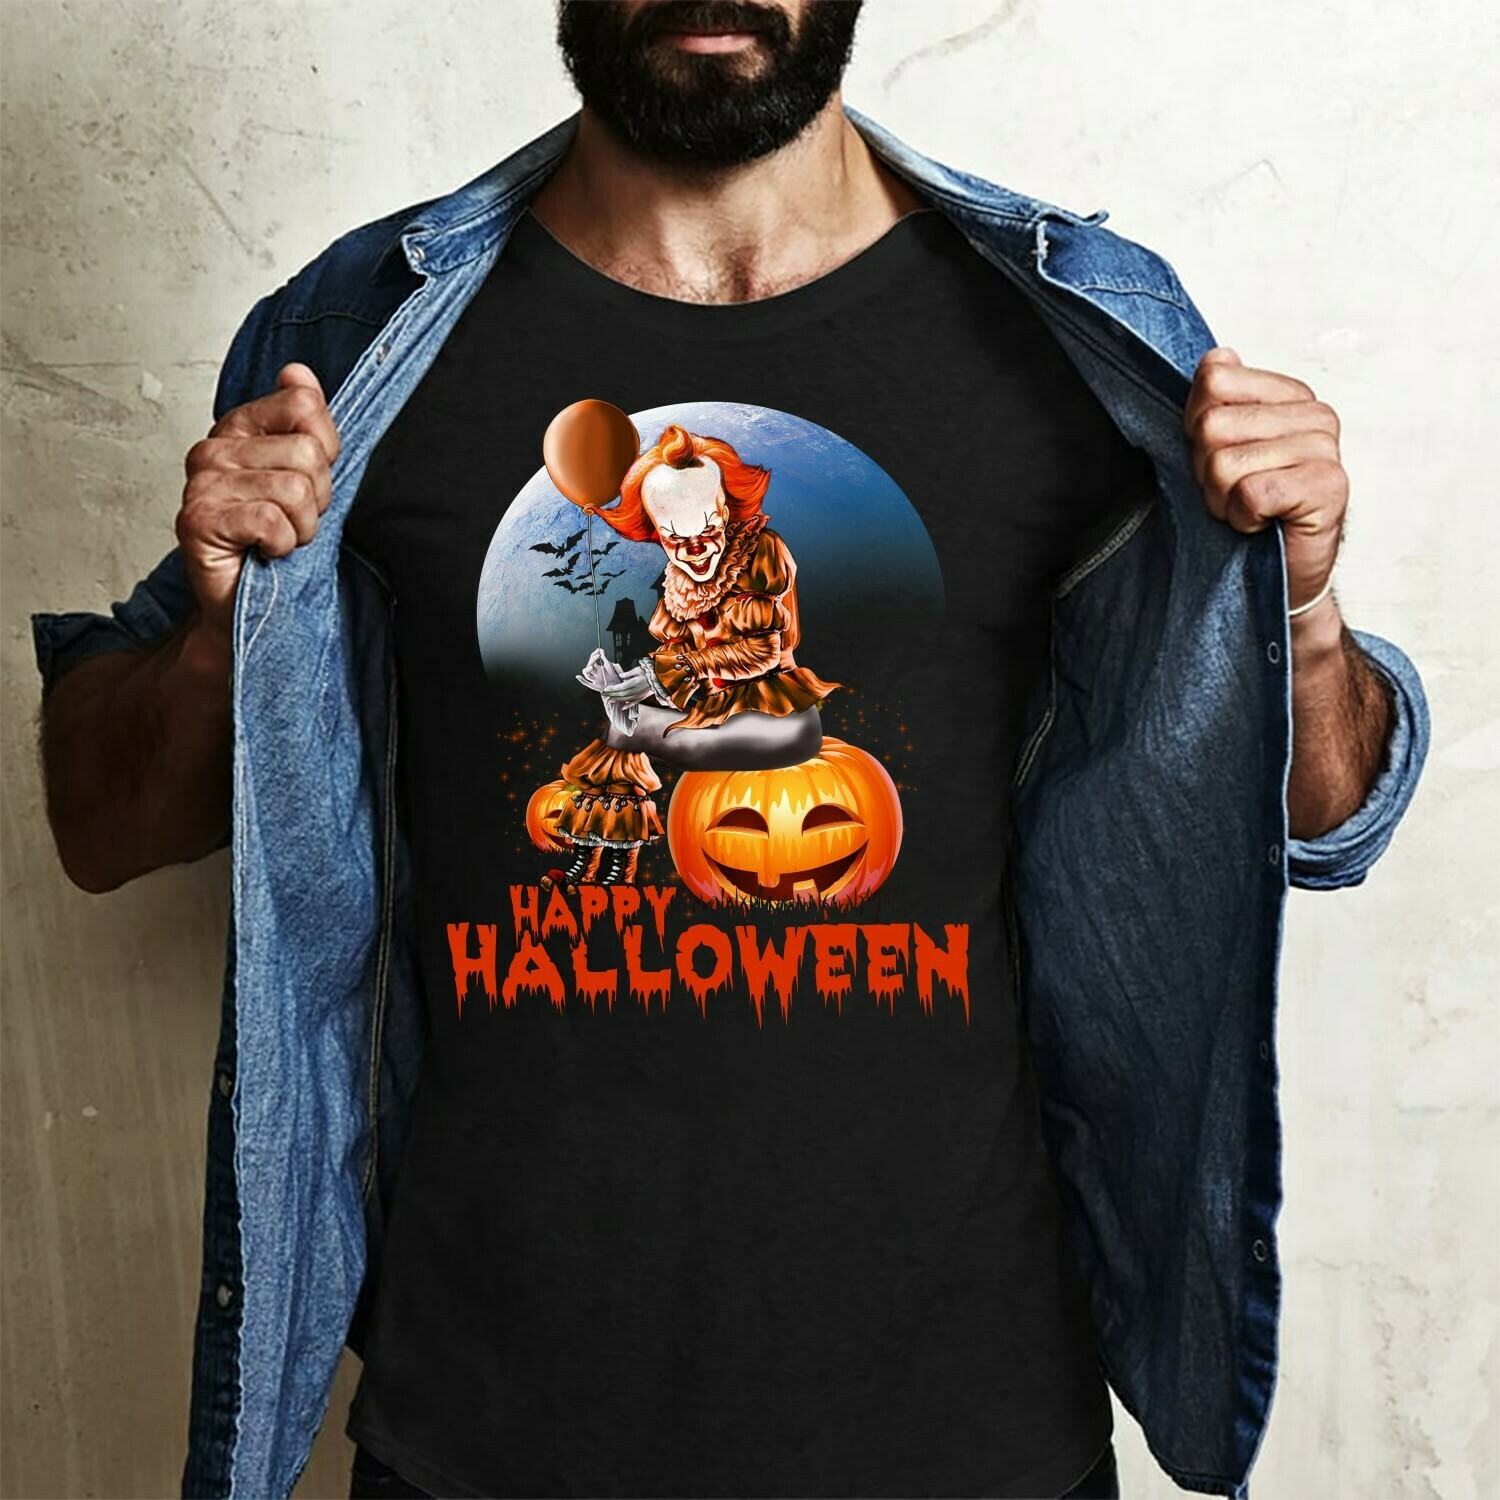 Happy Halloween Pumpkin IT Joker Pennywise 2019 We All Float Down Here Horror Spooky Clown Villains Halloween Movie Mashup Gifts T-Shirt Long Sleeve Sweatshirt Hoodie Jolly Family Gifts